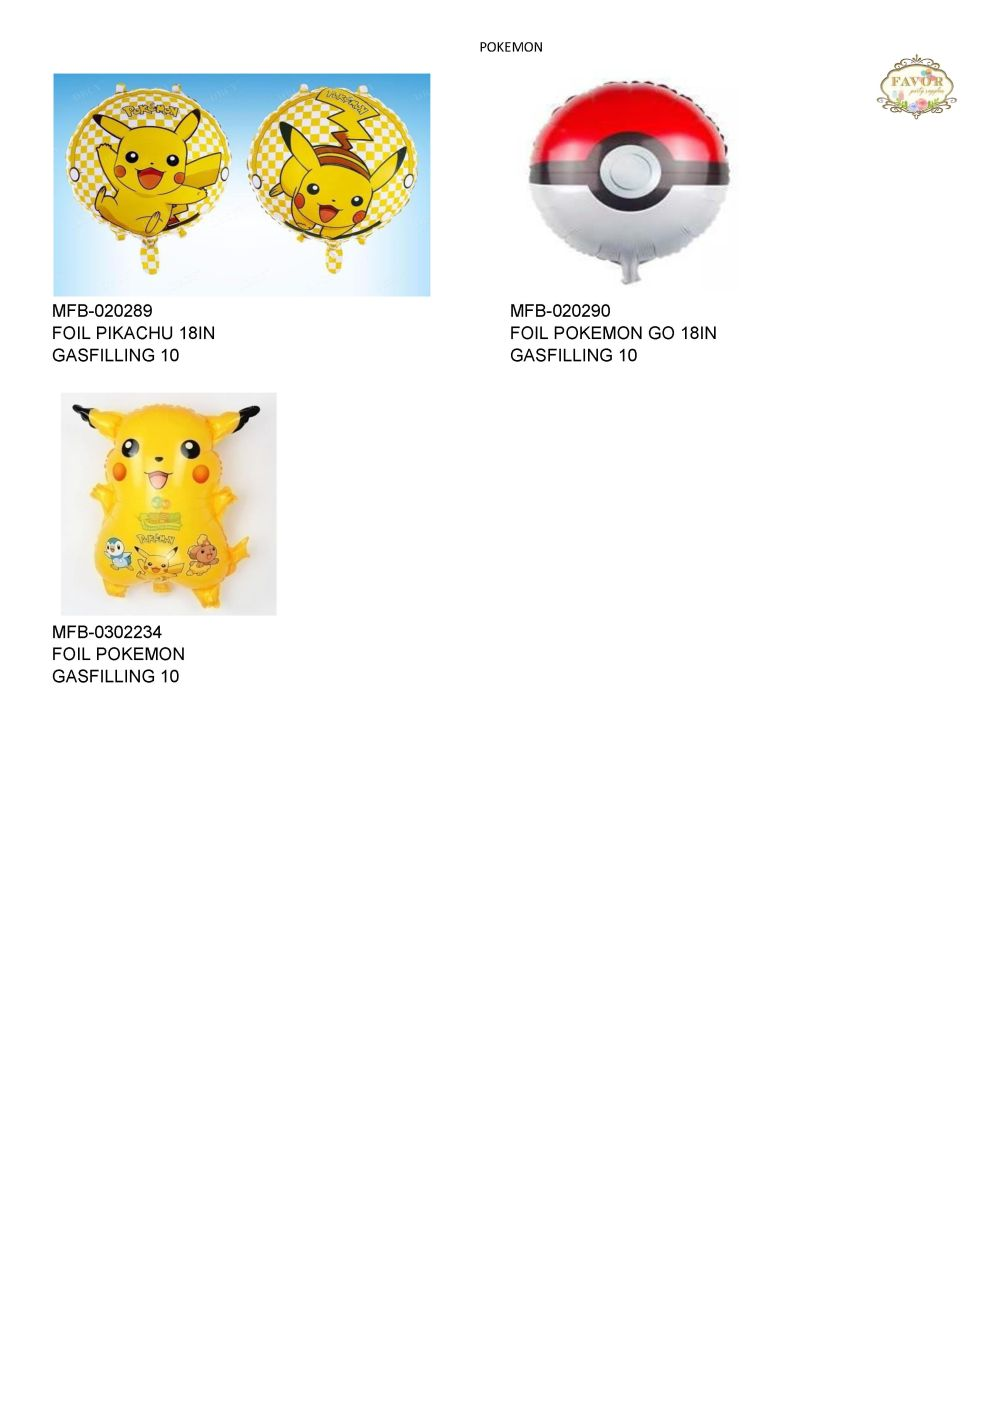 katalog-pokemon